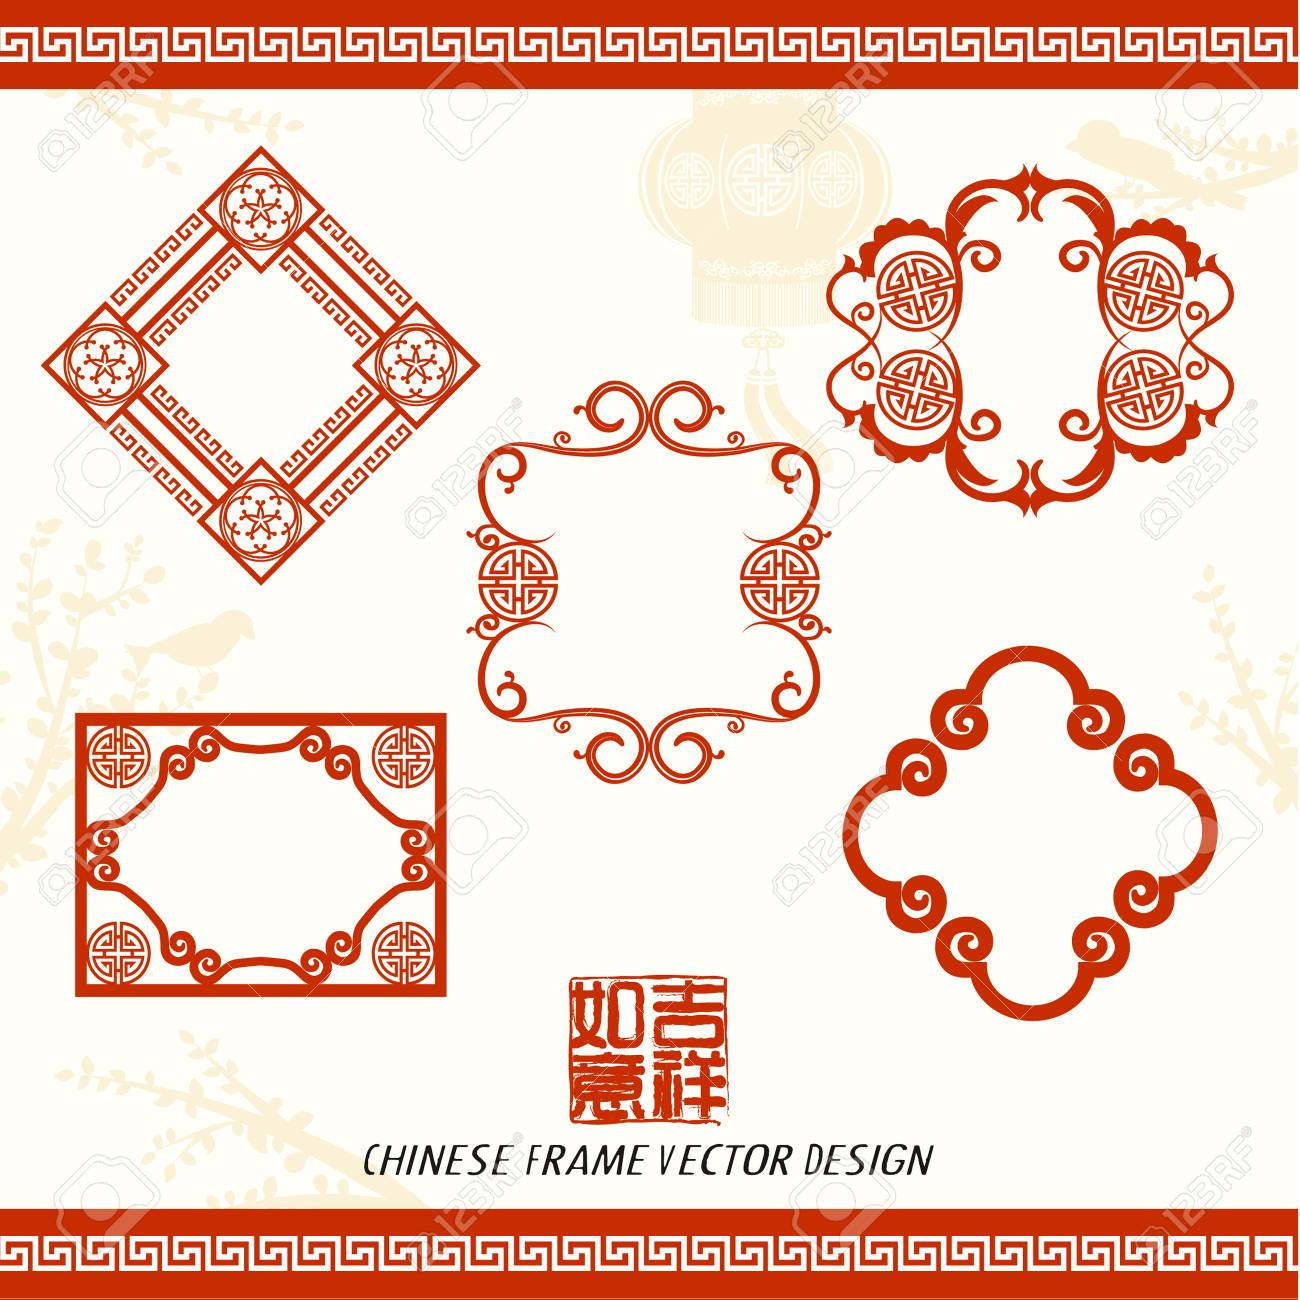 Oriental Chinese New Year Frame Vector Design Royalty Free Cliparts